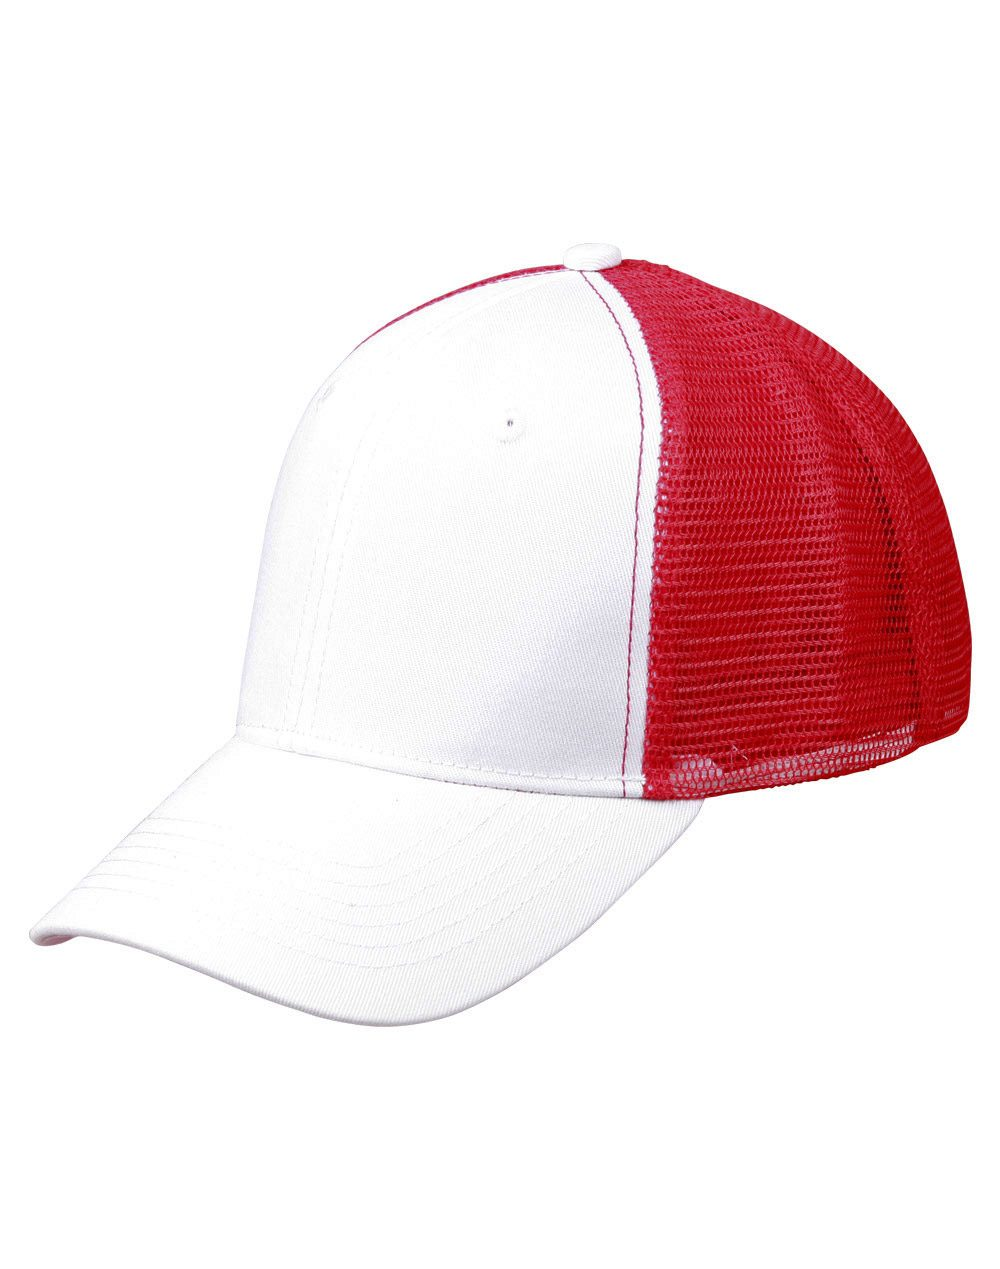 CH89 - White/Red